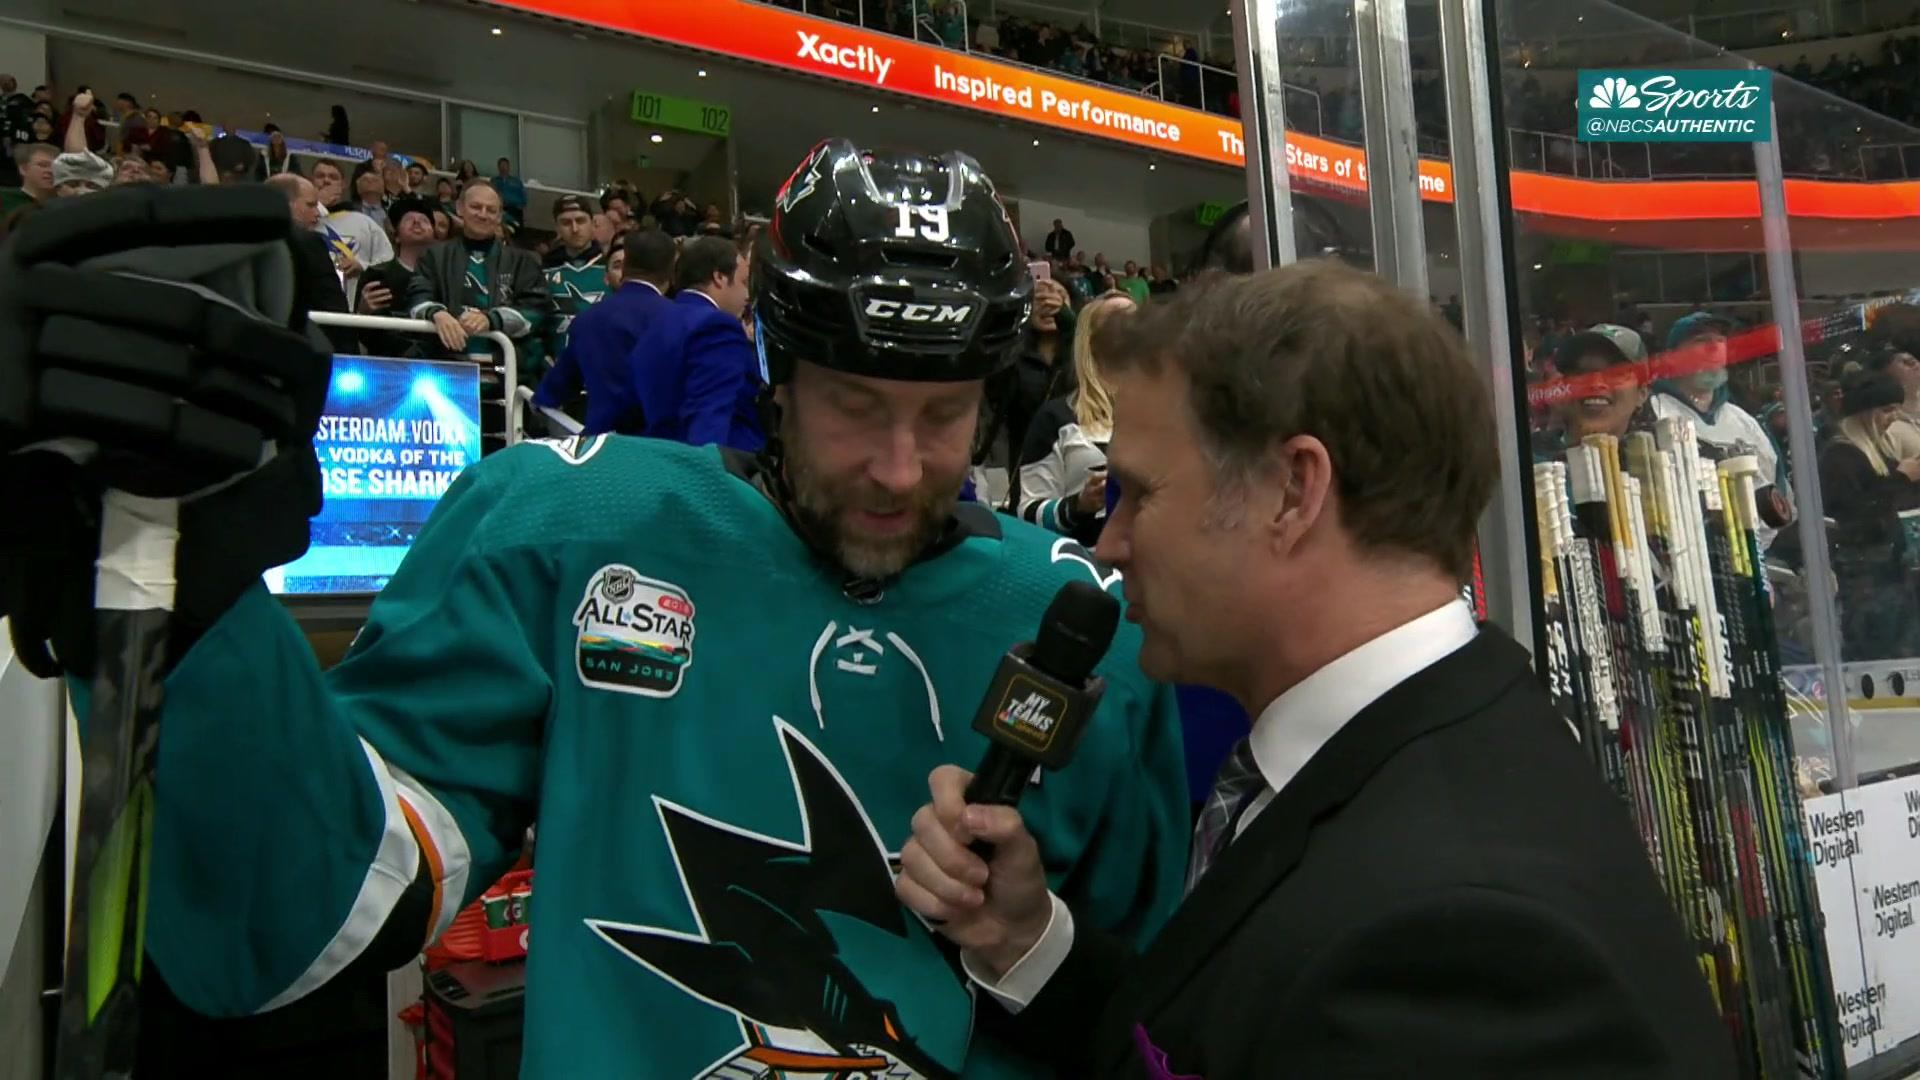 Joe Thornton says he had to score No. 400 for Sharks fans at SAP Center